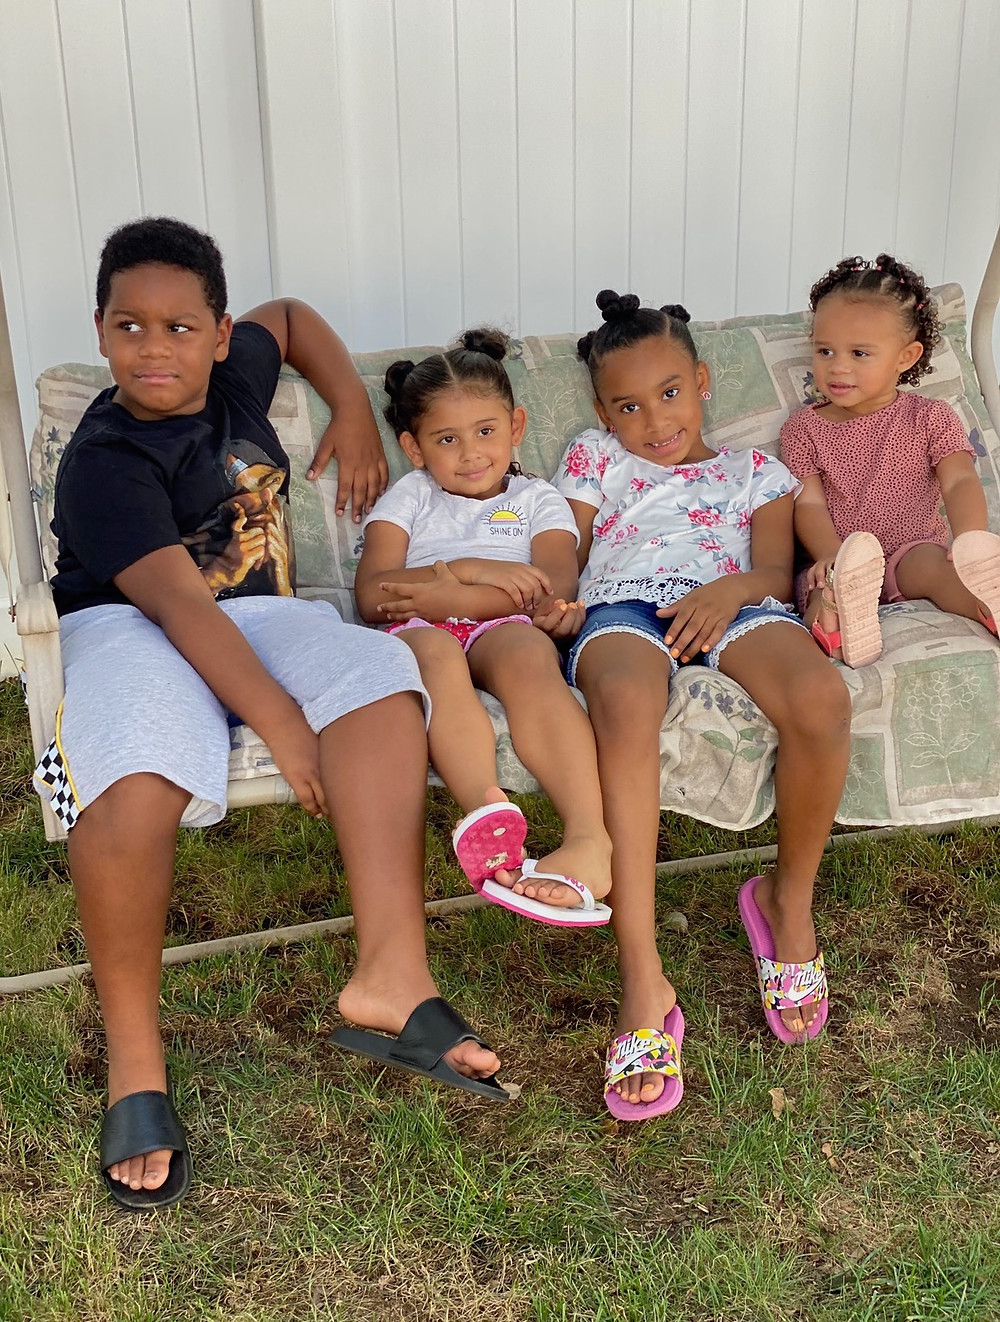 All in the Family: the four Davis grandchildren, ages 2 to 8